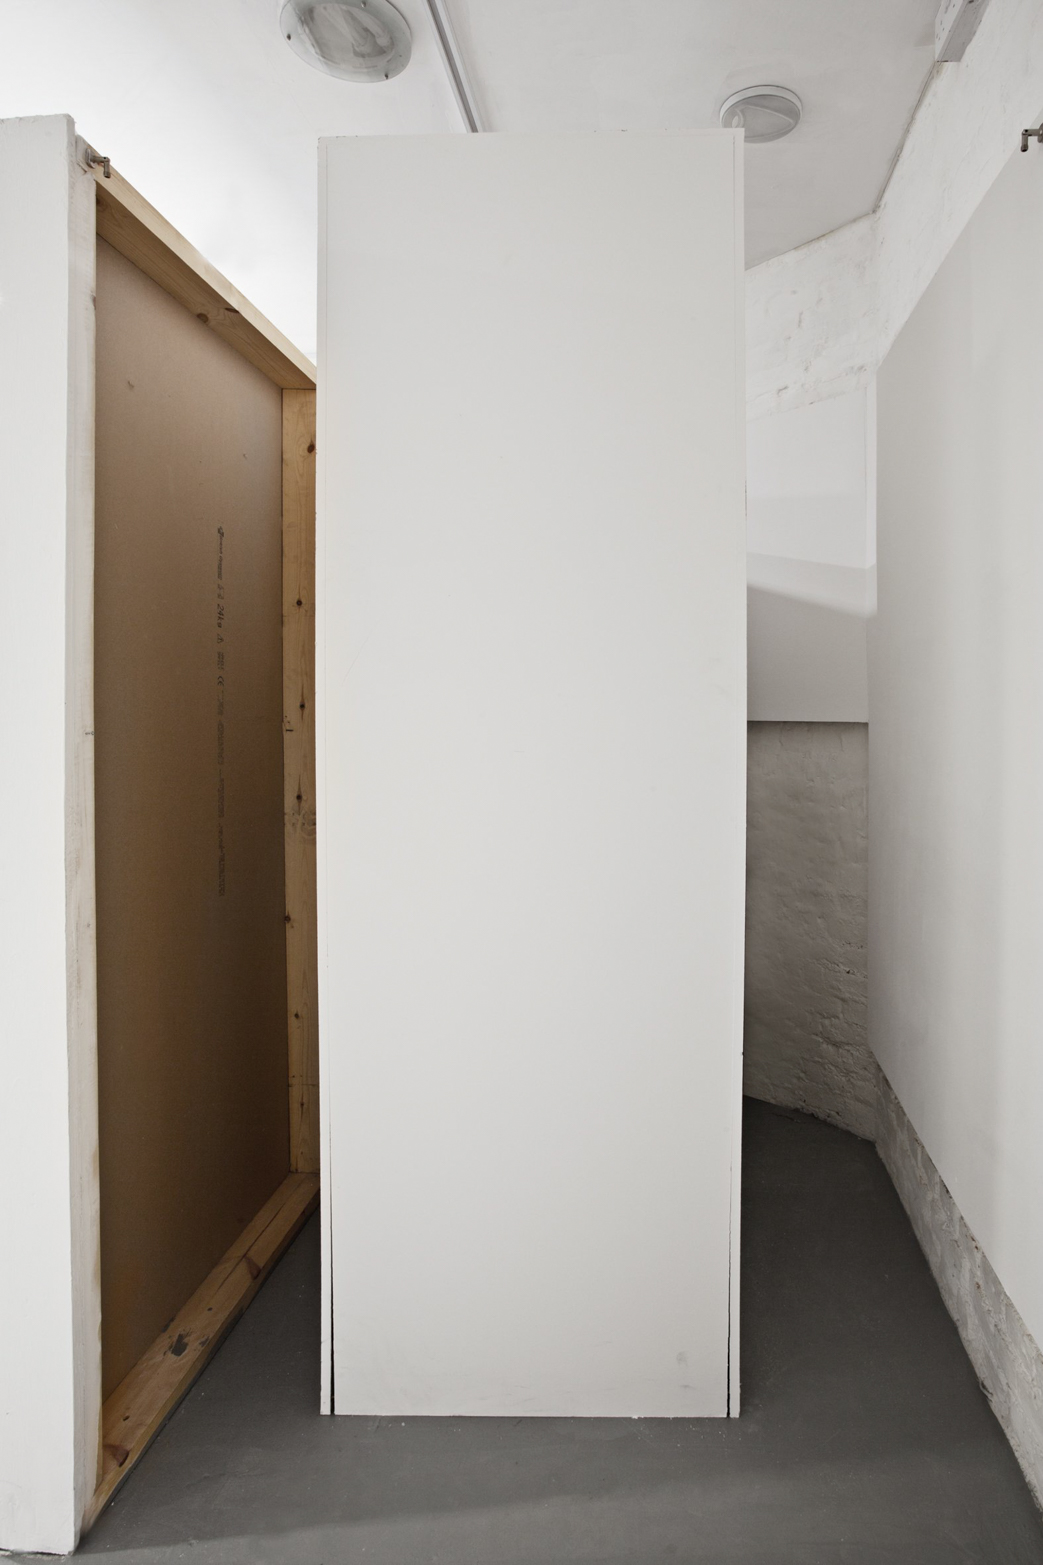 Tomas Chaffe. Approximately 2220 x 810 x 625 mm (The Largest Possible Plinth to Enter the Gallery Space, without Altering the Fabric of the Building, 2013.)